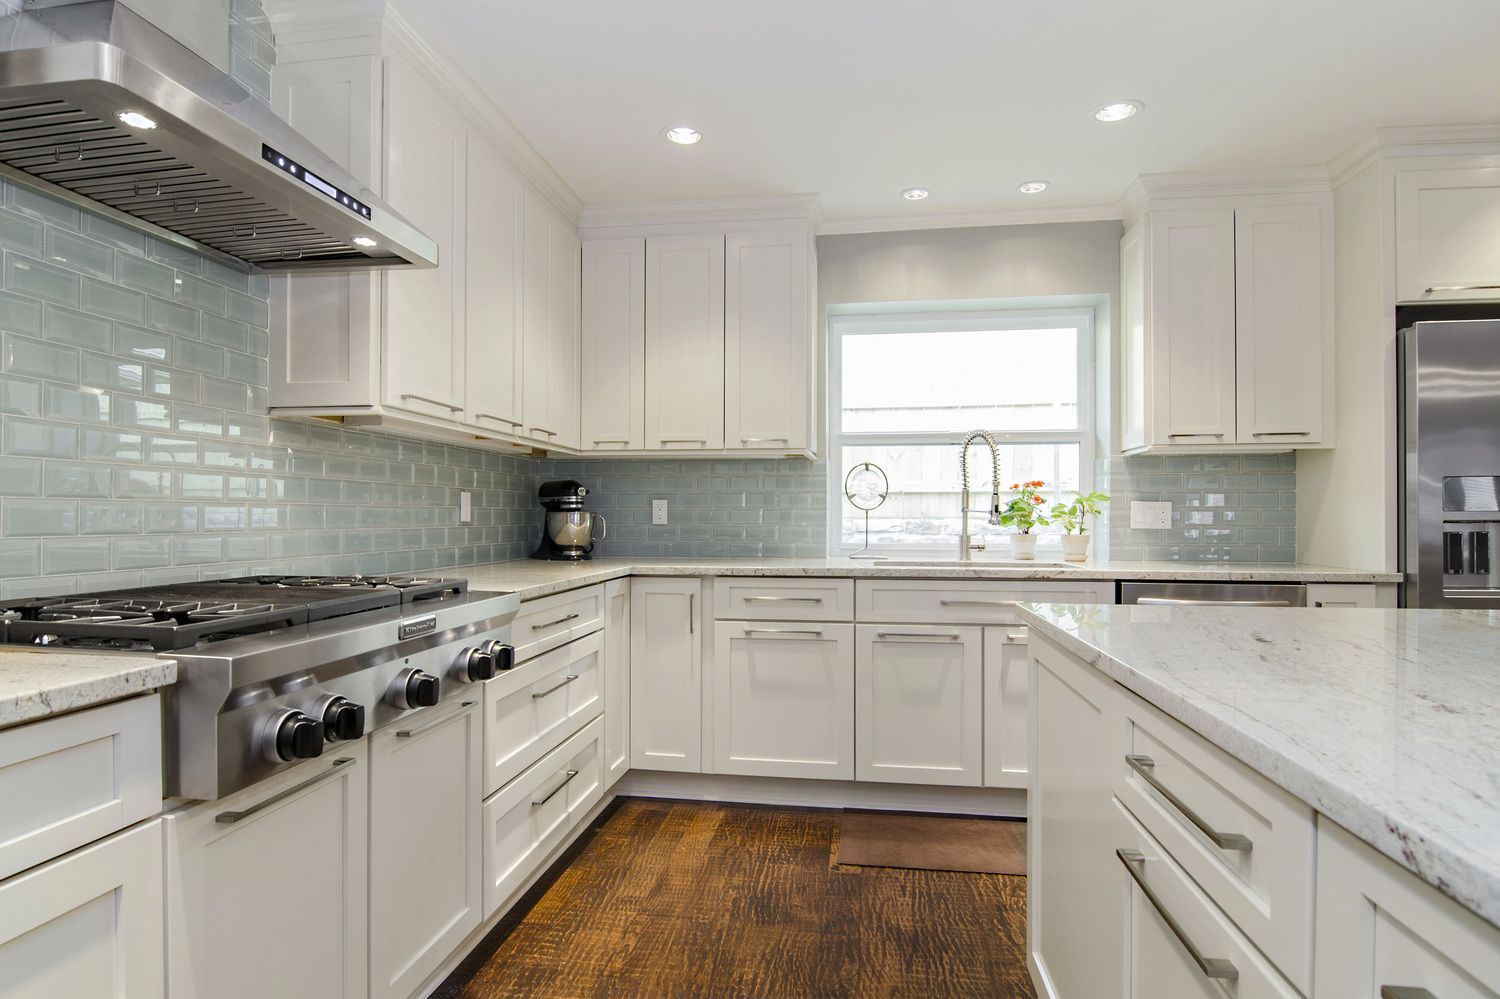 What Color Countertops Go With White Cabinets River White Granite With Cashmere White Colors Kitchen